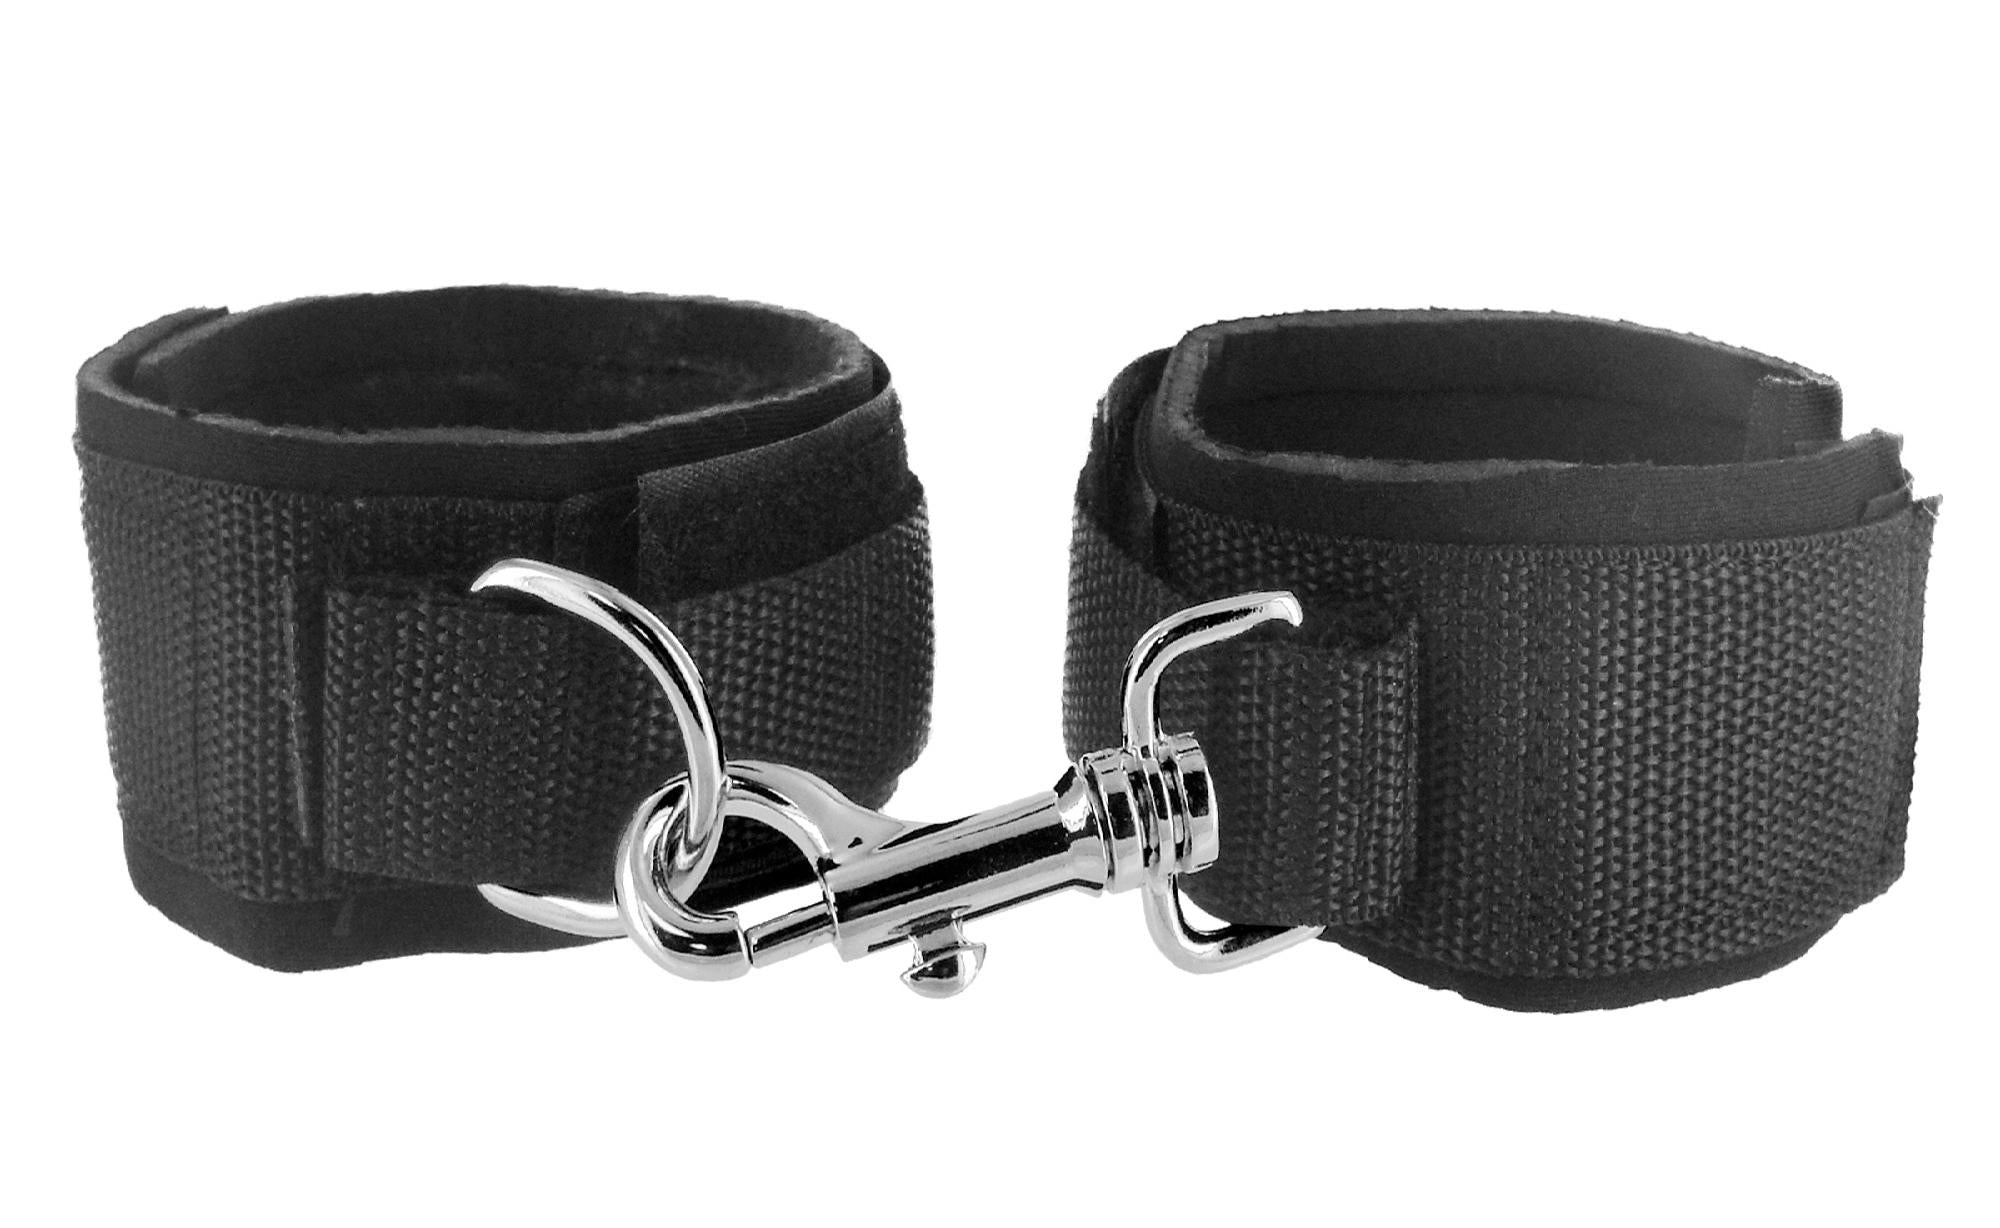 Doggy Style Spread Eagle Restraint Kit